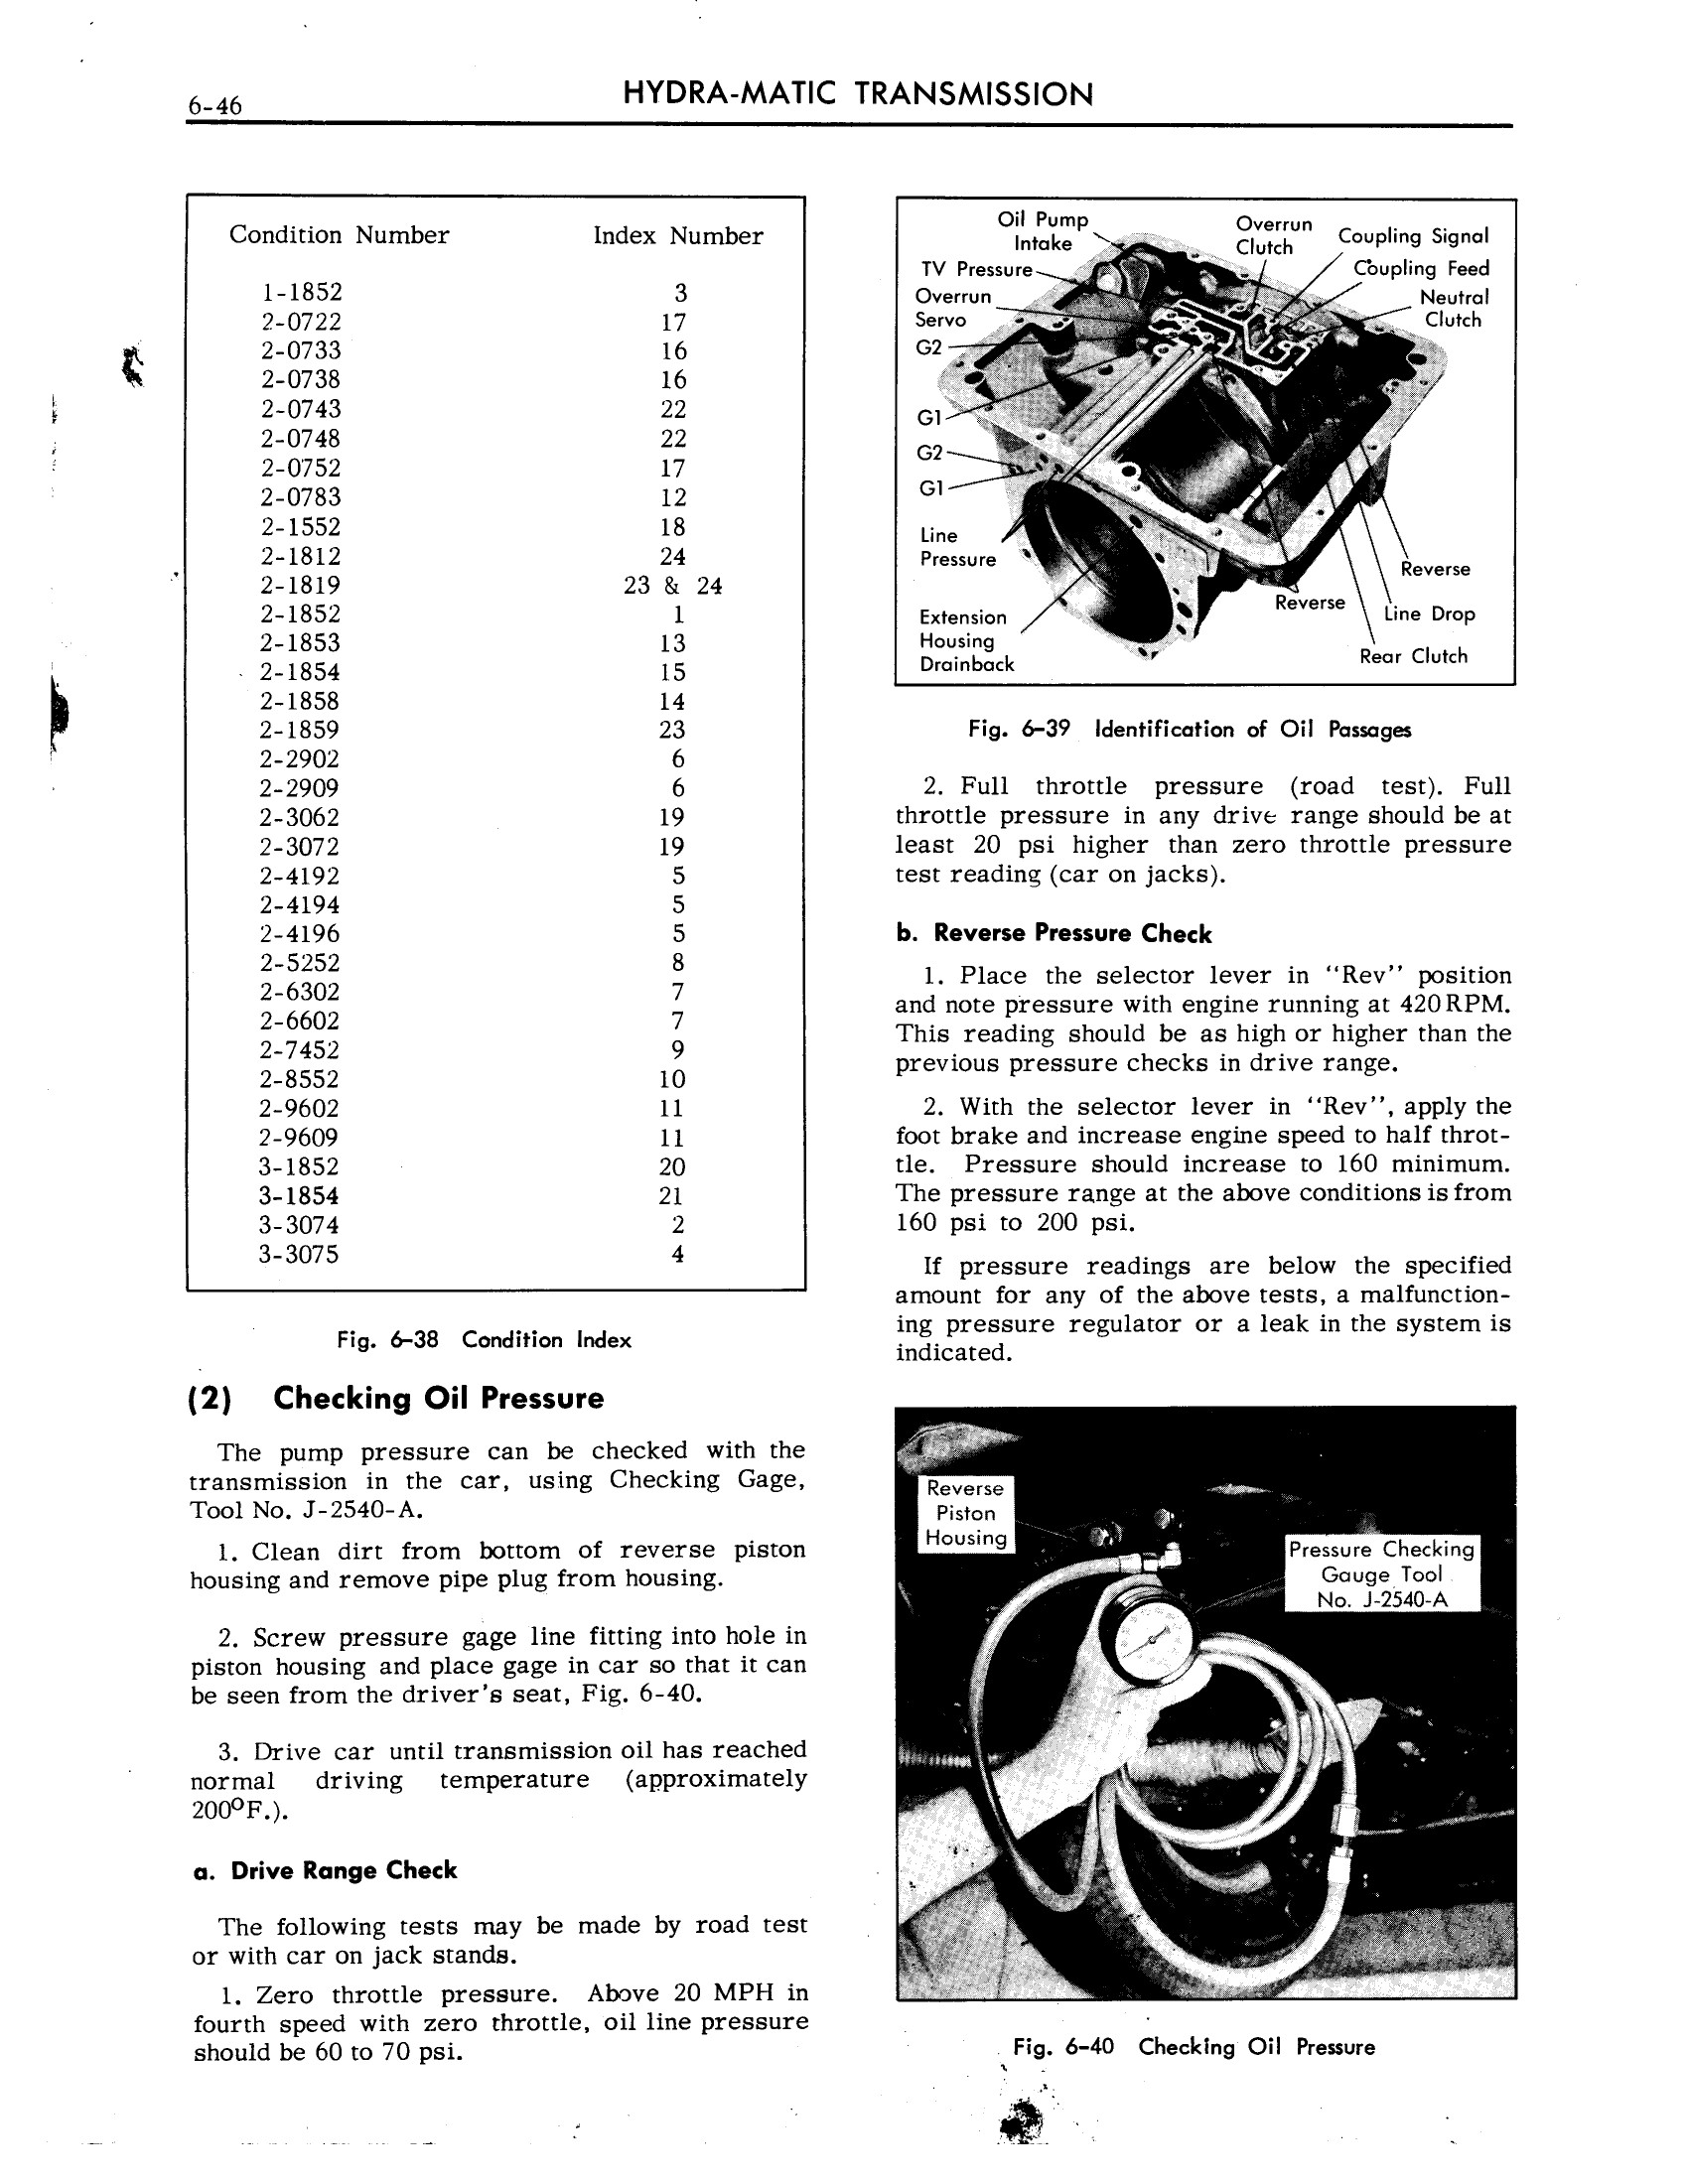 1959 Cadillac Shop Manual- Hydra-Matic Page 46 of 89